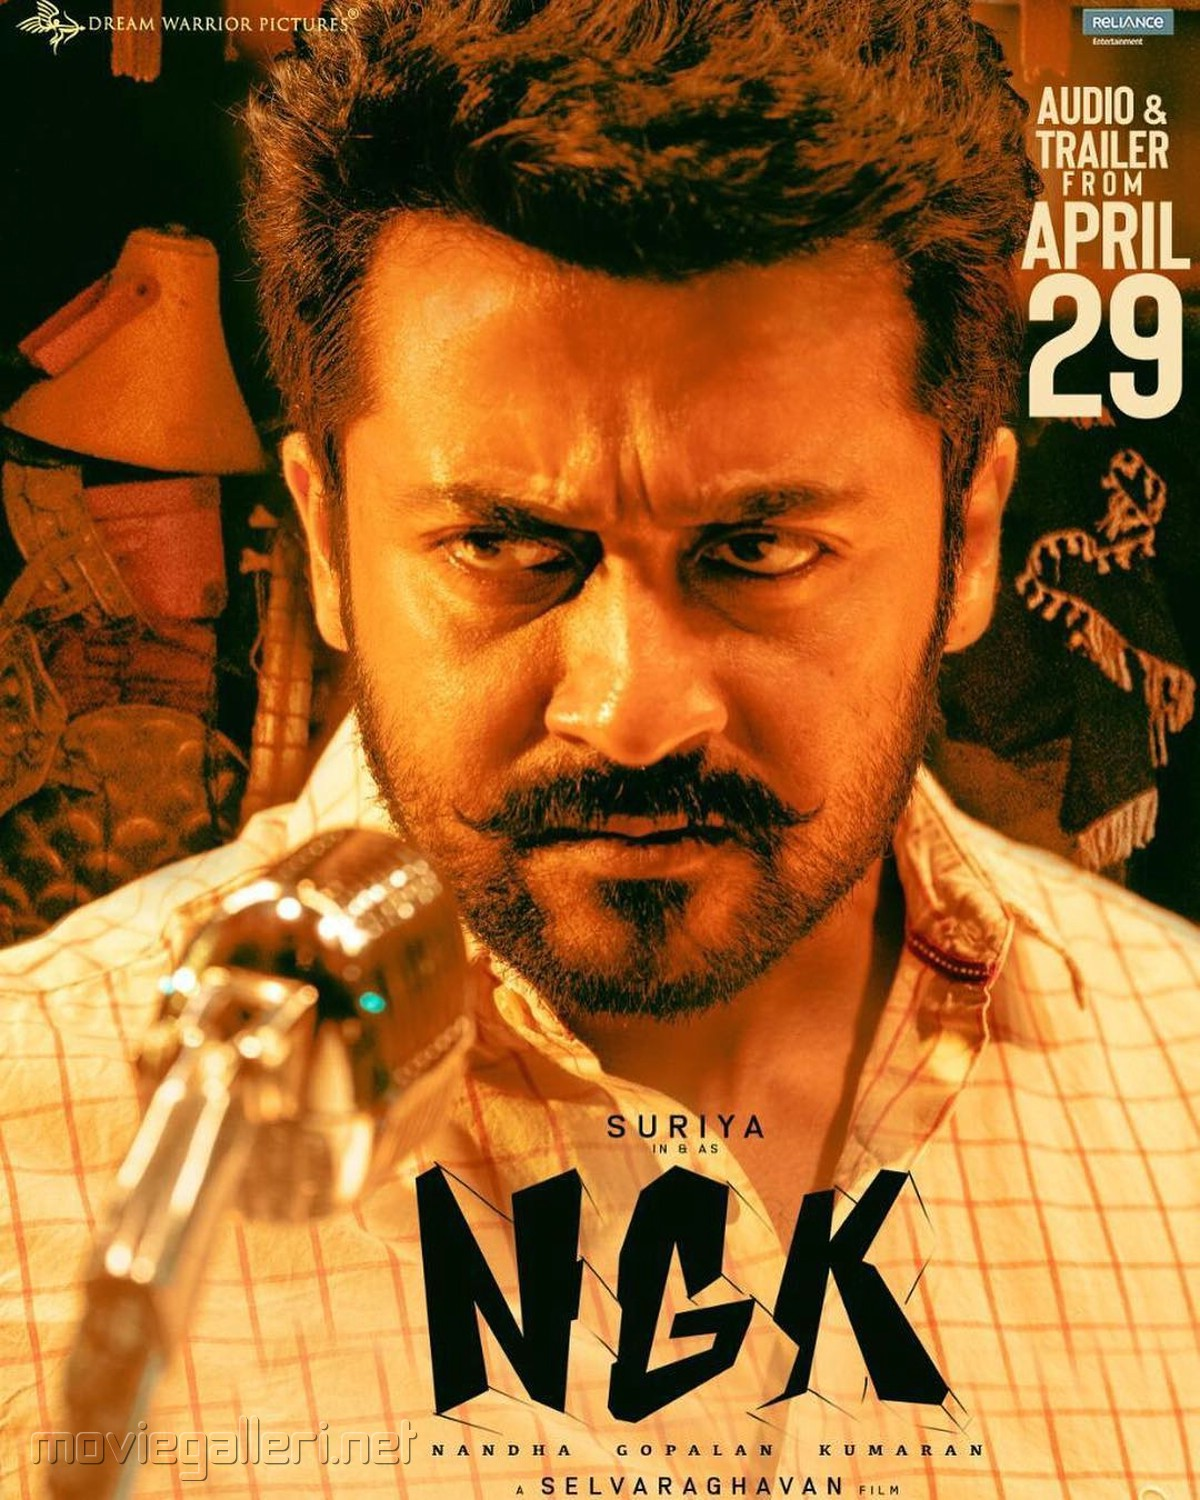 Suriya NGK Movie Audio and Trailer From April 29th Poster HD